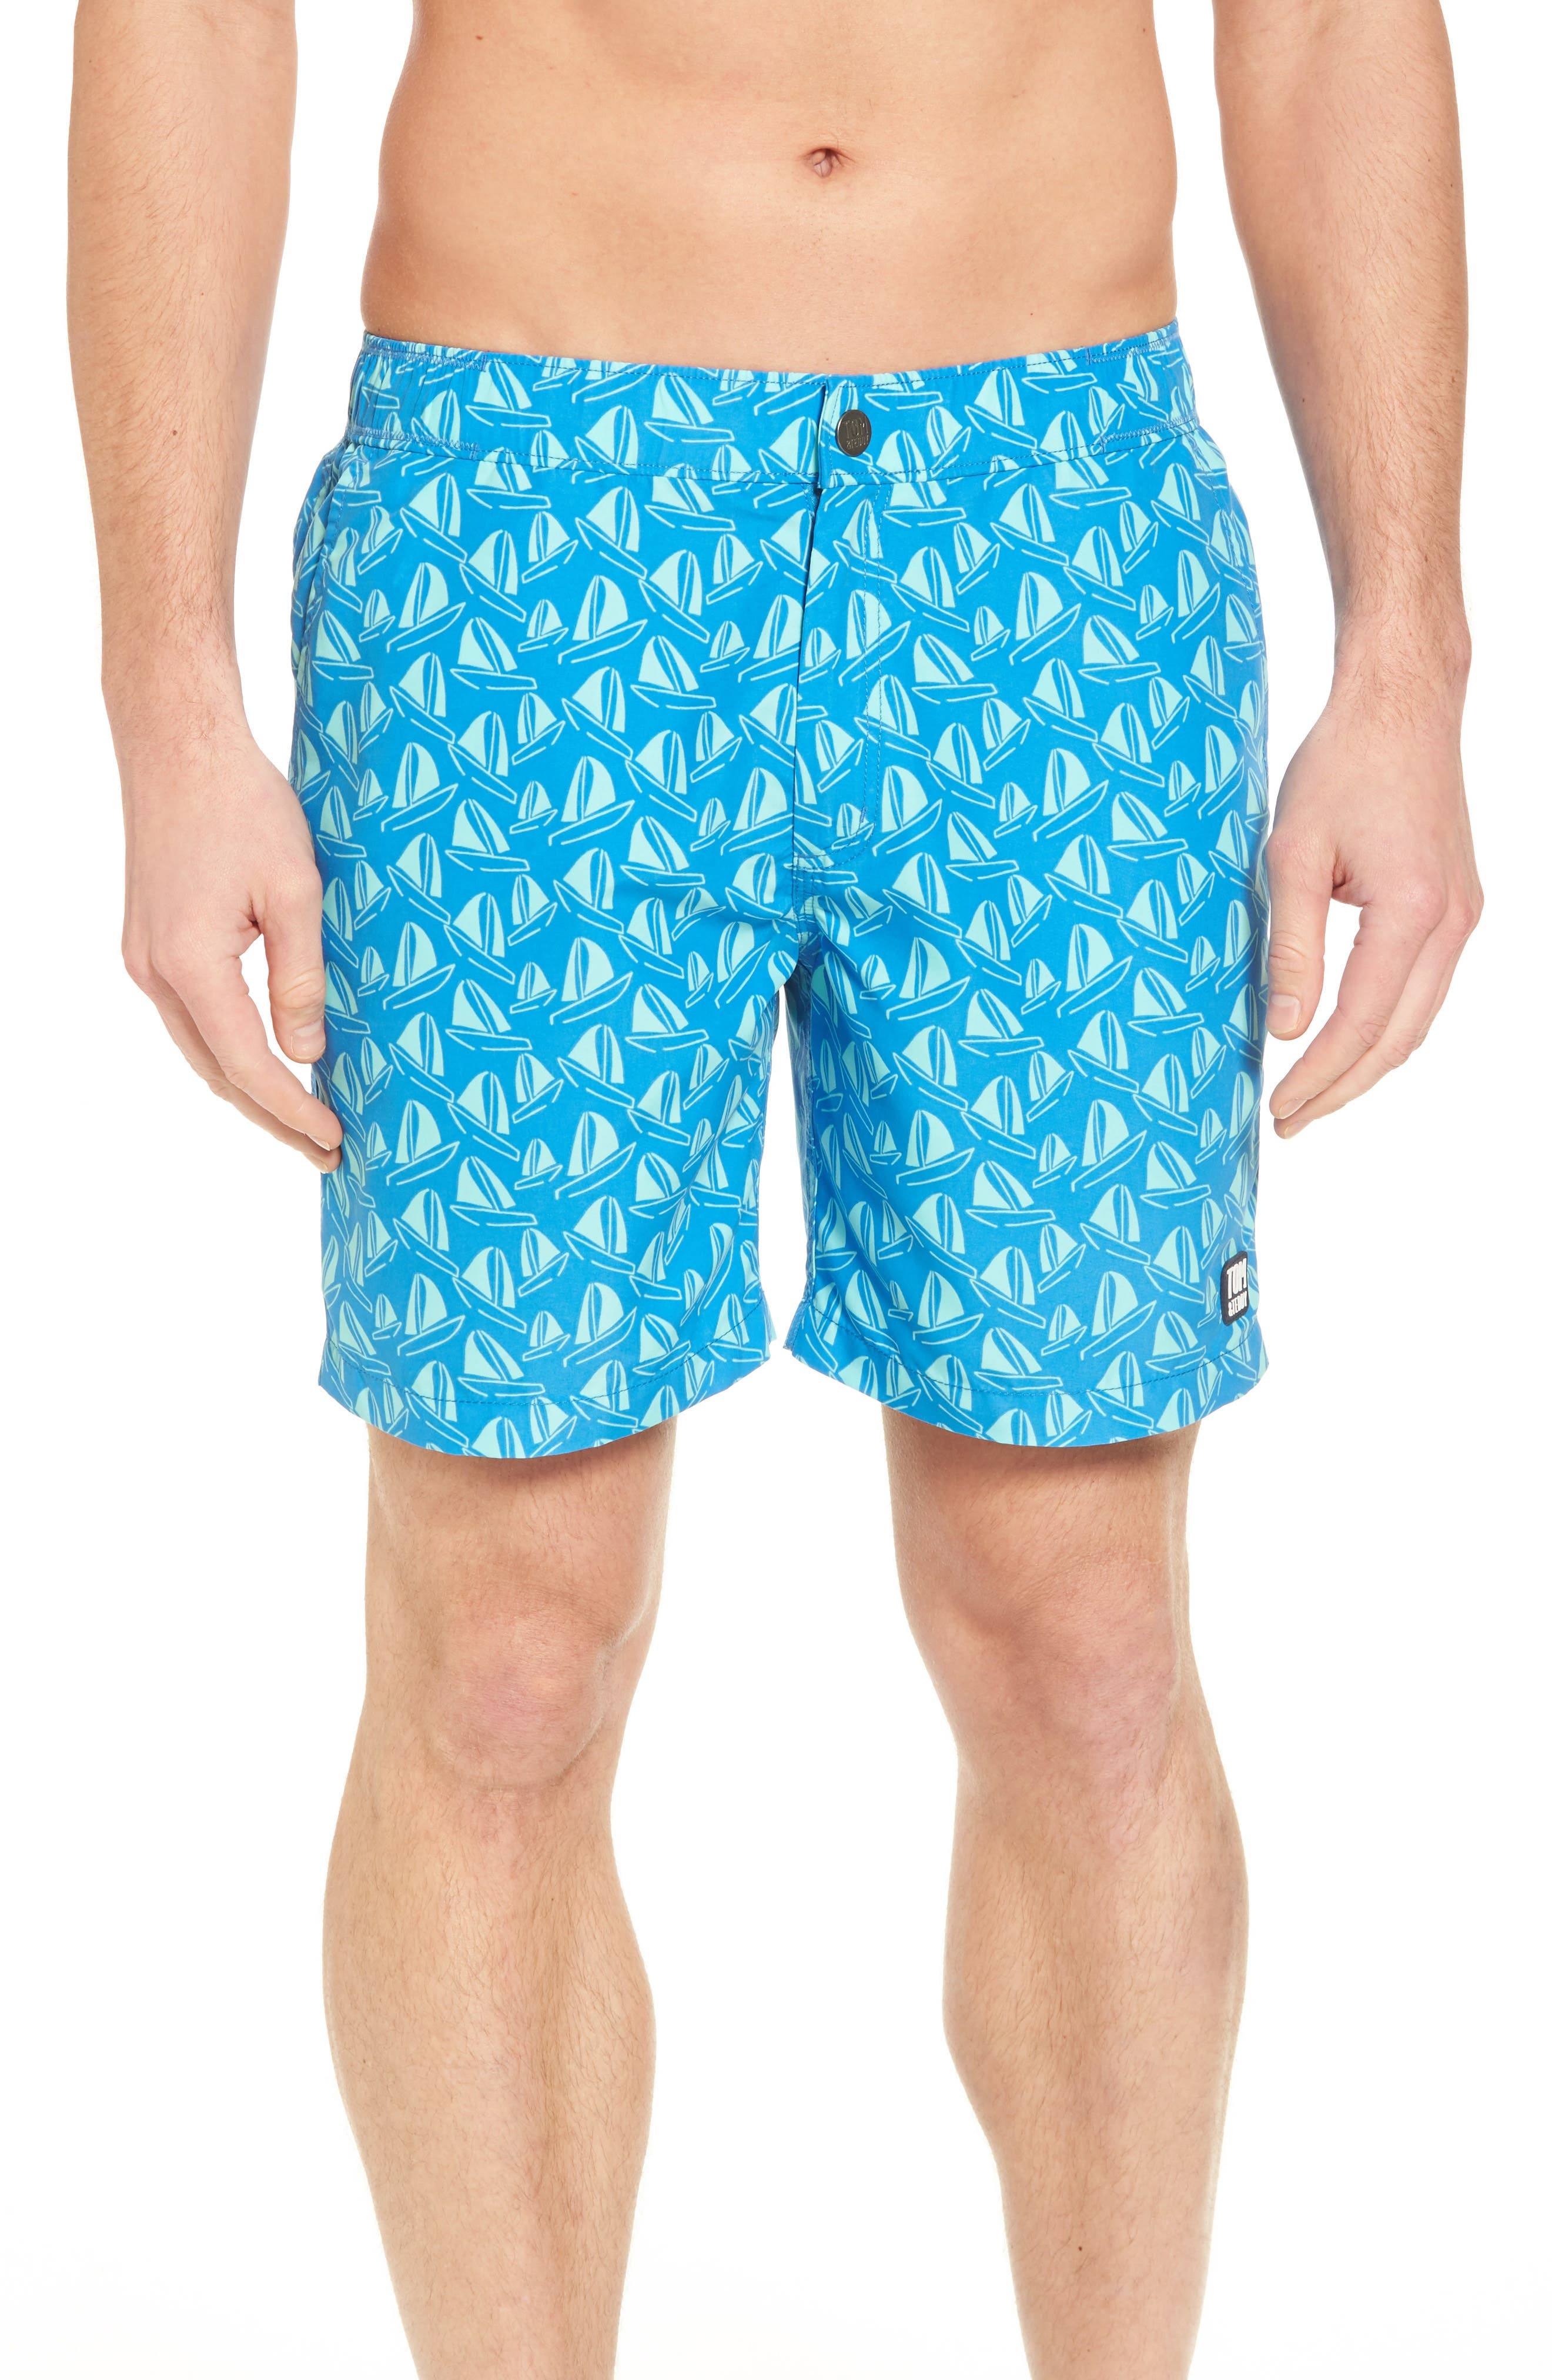 Boat Print Swim Trunks,                             Main thumbnail 1, color,                             French Blue And Sky